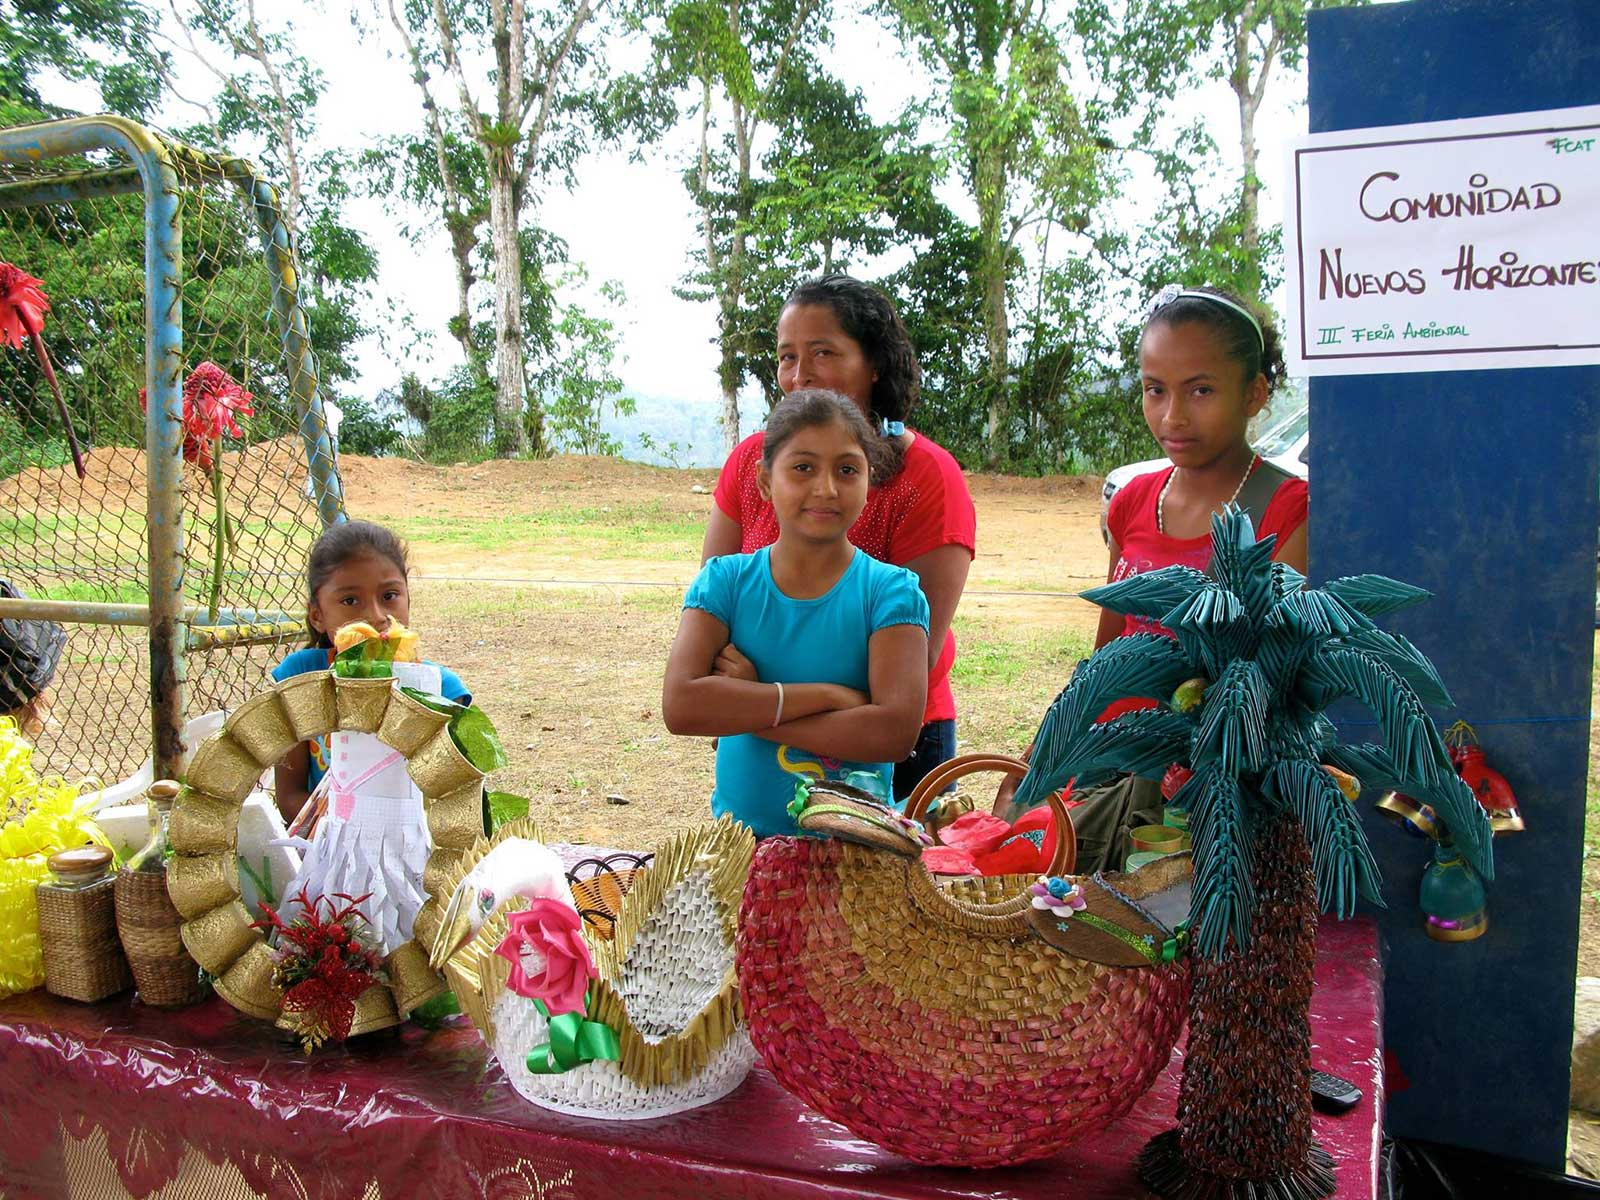 A woman and three girls selling a variety of woven items